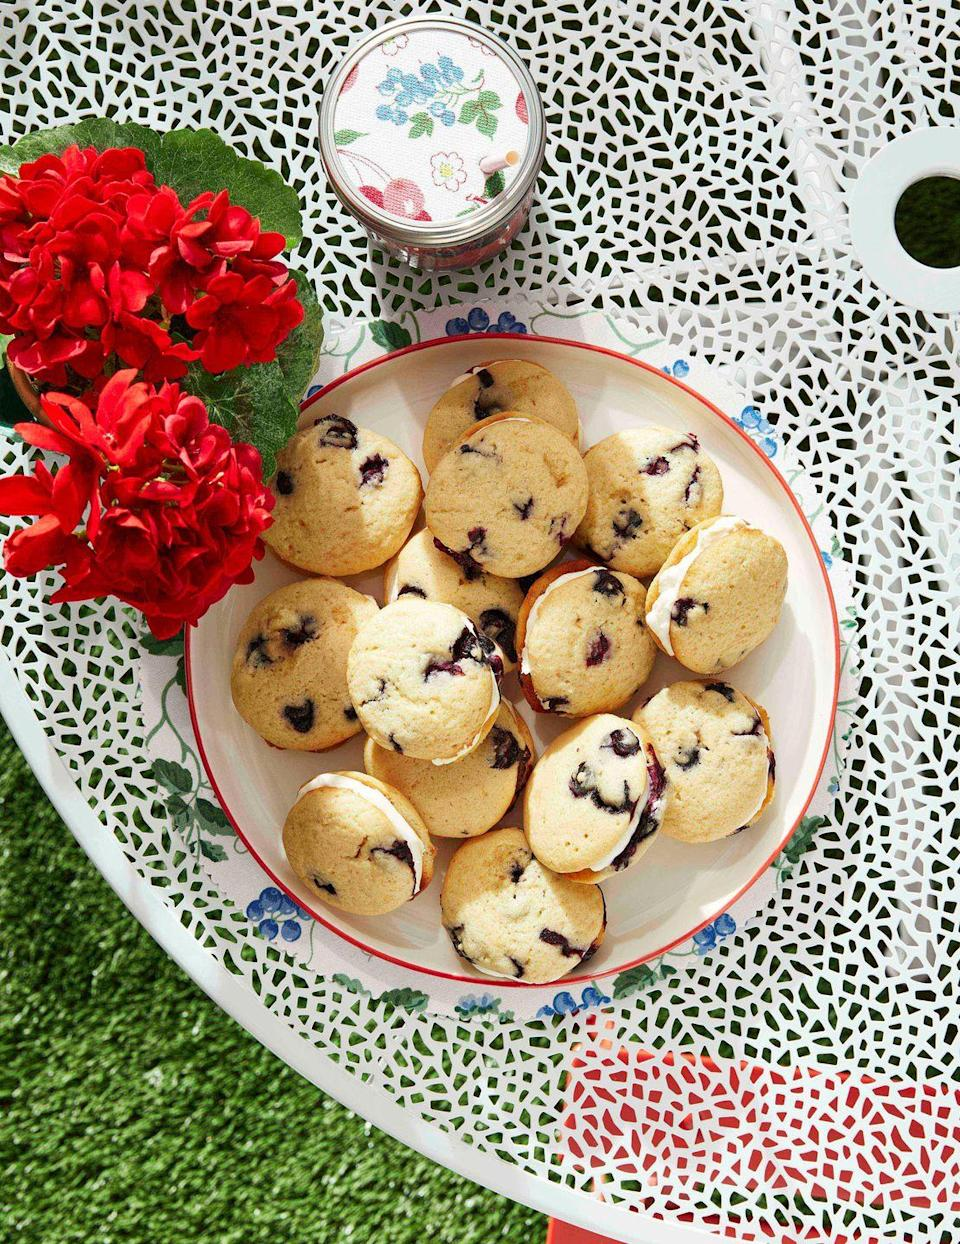 """<p>Make use of fresh blueberries and serve these soft and tender marscarpone-filled cookies for Mother's Day.</p><p><a href=""""https://www.countryliving.com/food-drinks/a32352585/blueberry-whoopie-pies/"""" rel=""""nofollow noopener"""" target=""""_blank"""" data-ylk=""""slk:Get the recipe"""" class=""""link rapid-noclick-resp"""">Get the recipe</a>. </p>"""